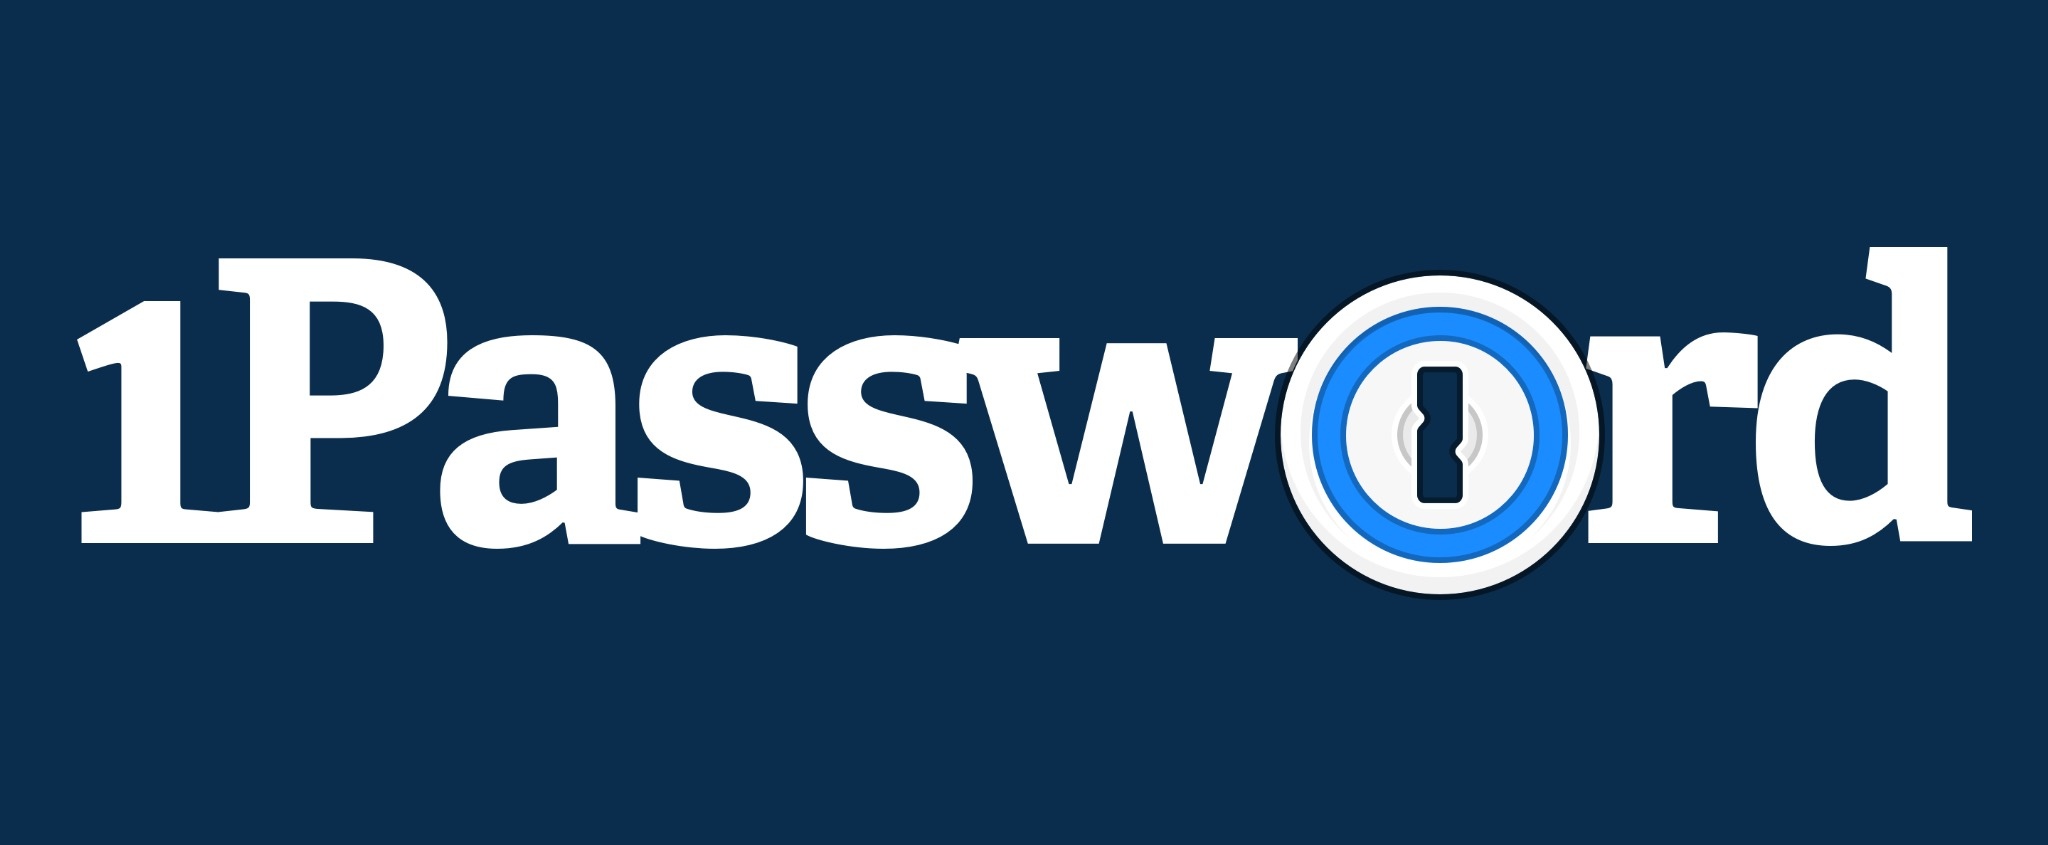 app-subscriptions-worth-paying-for-1password